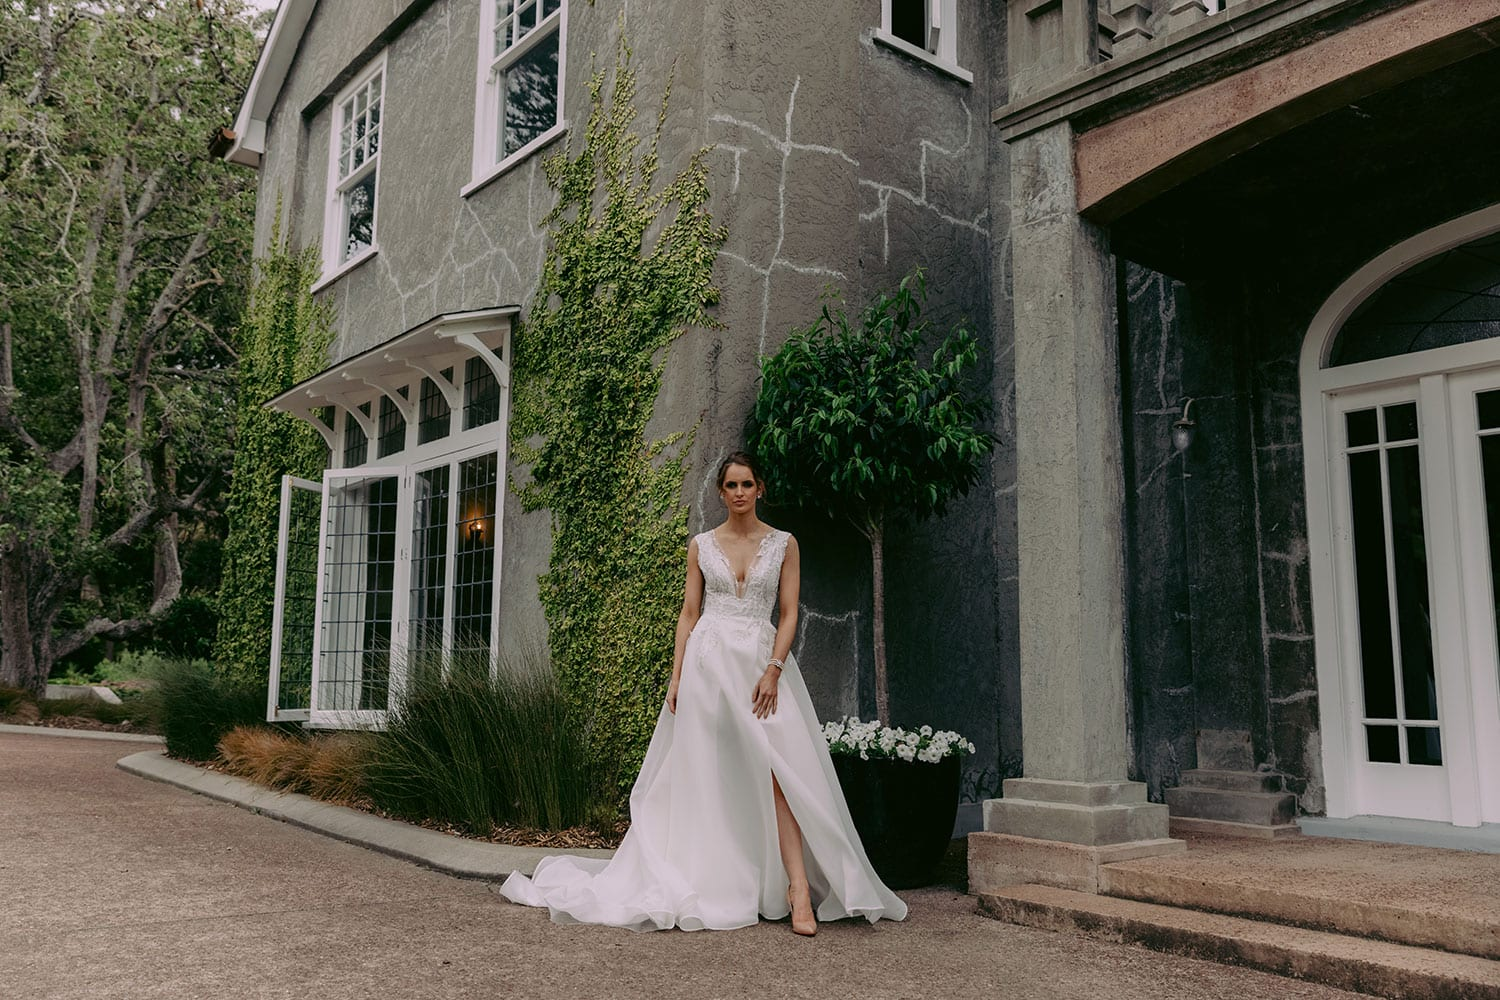 Rema Wedding gown from Vinka Design - This wedding dress has a bold design with a feminine style. Layers of dreamy satin organza with deep folds that open to reveal a split, and structured lace bodice that tapers at the waist to accentuates the figure. Model wearing gown outside old heritage building in Auckland..